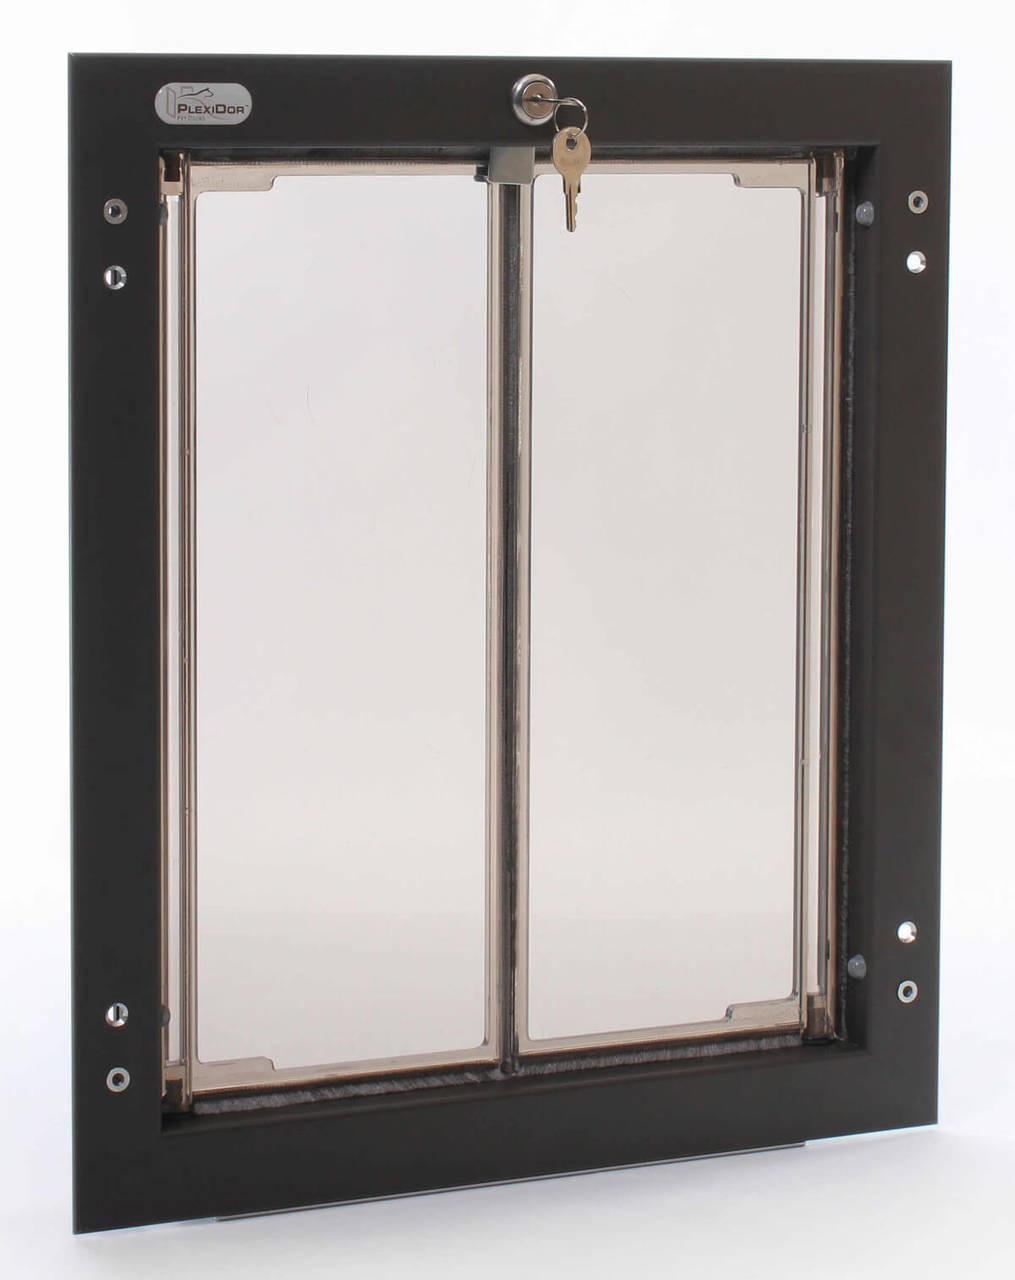 Plexidor Dog Doors Have Saloon Style Double Flaps That Meet In The Center  In The Medium